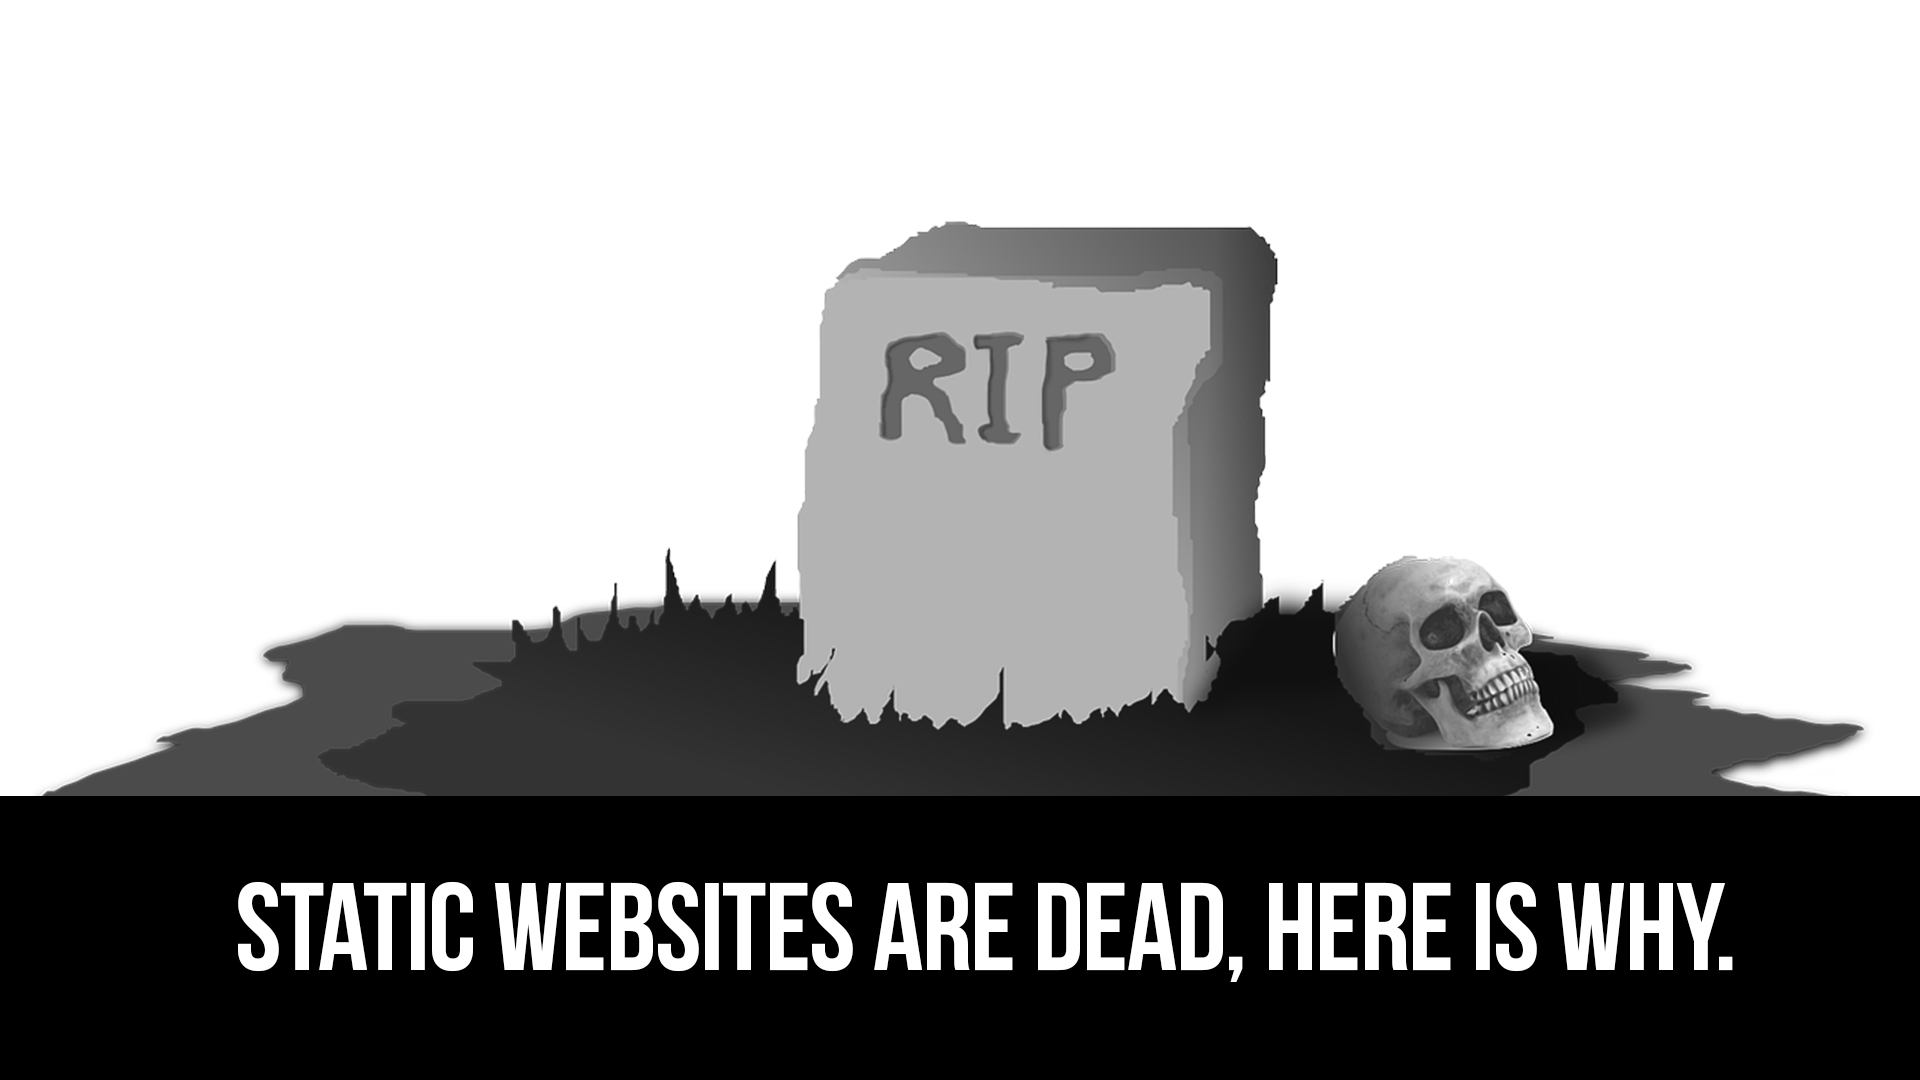 Static websites are dead, find out why.